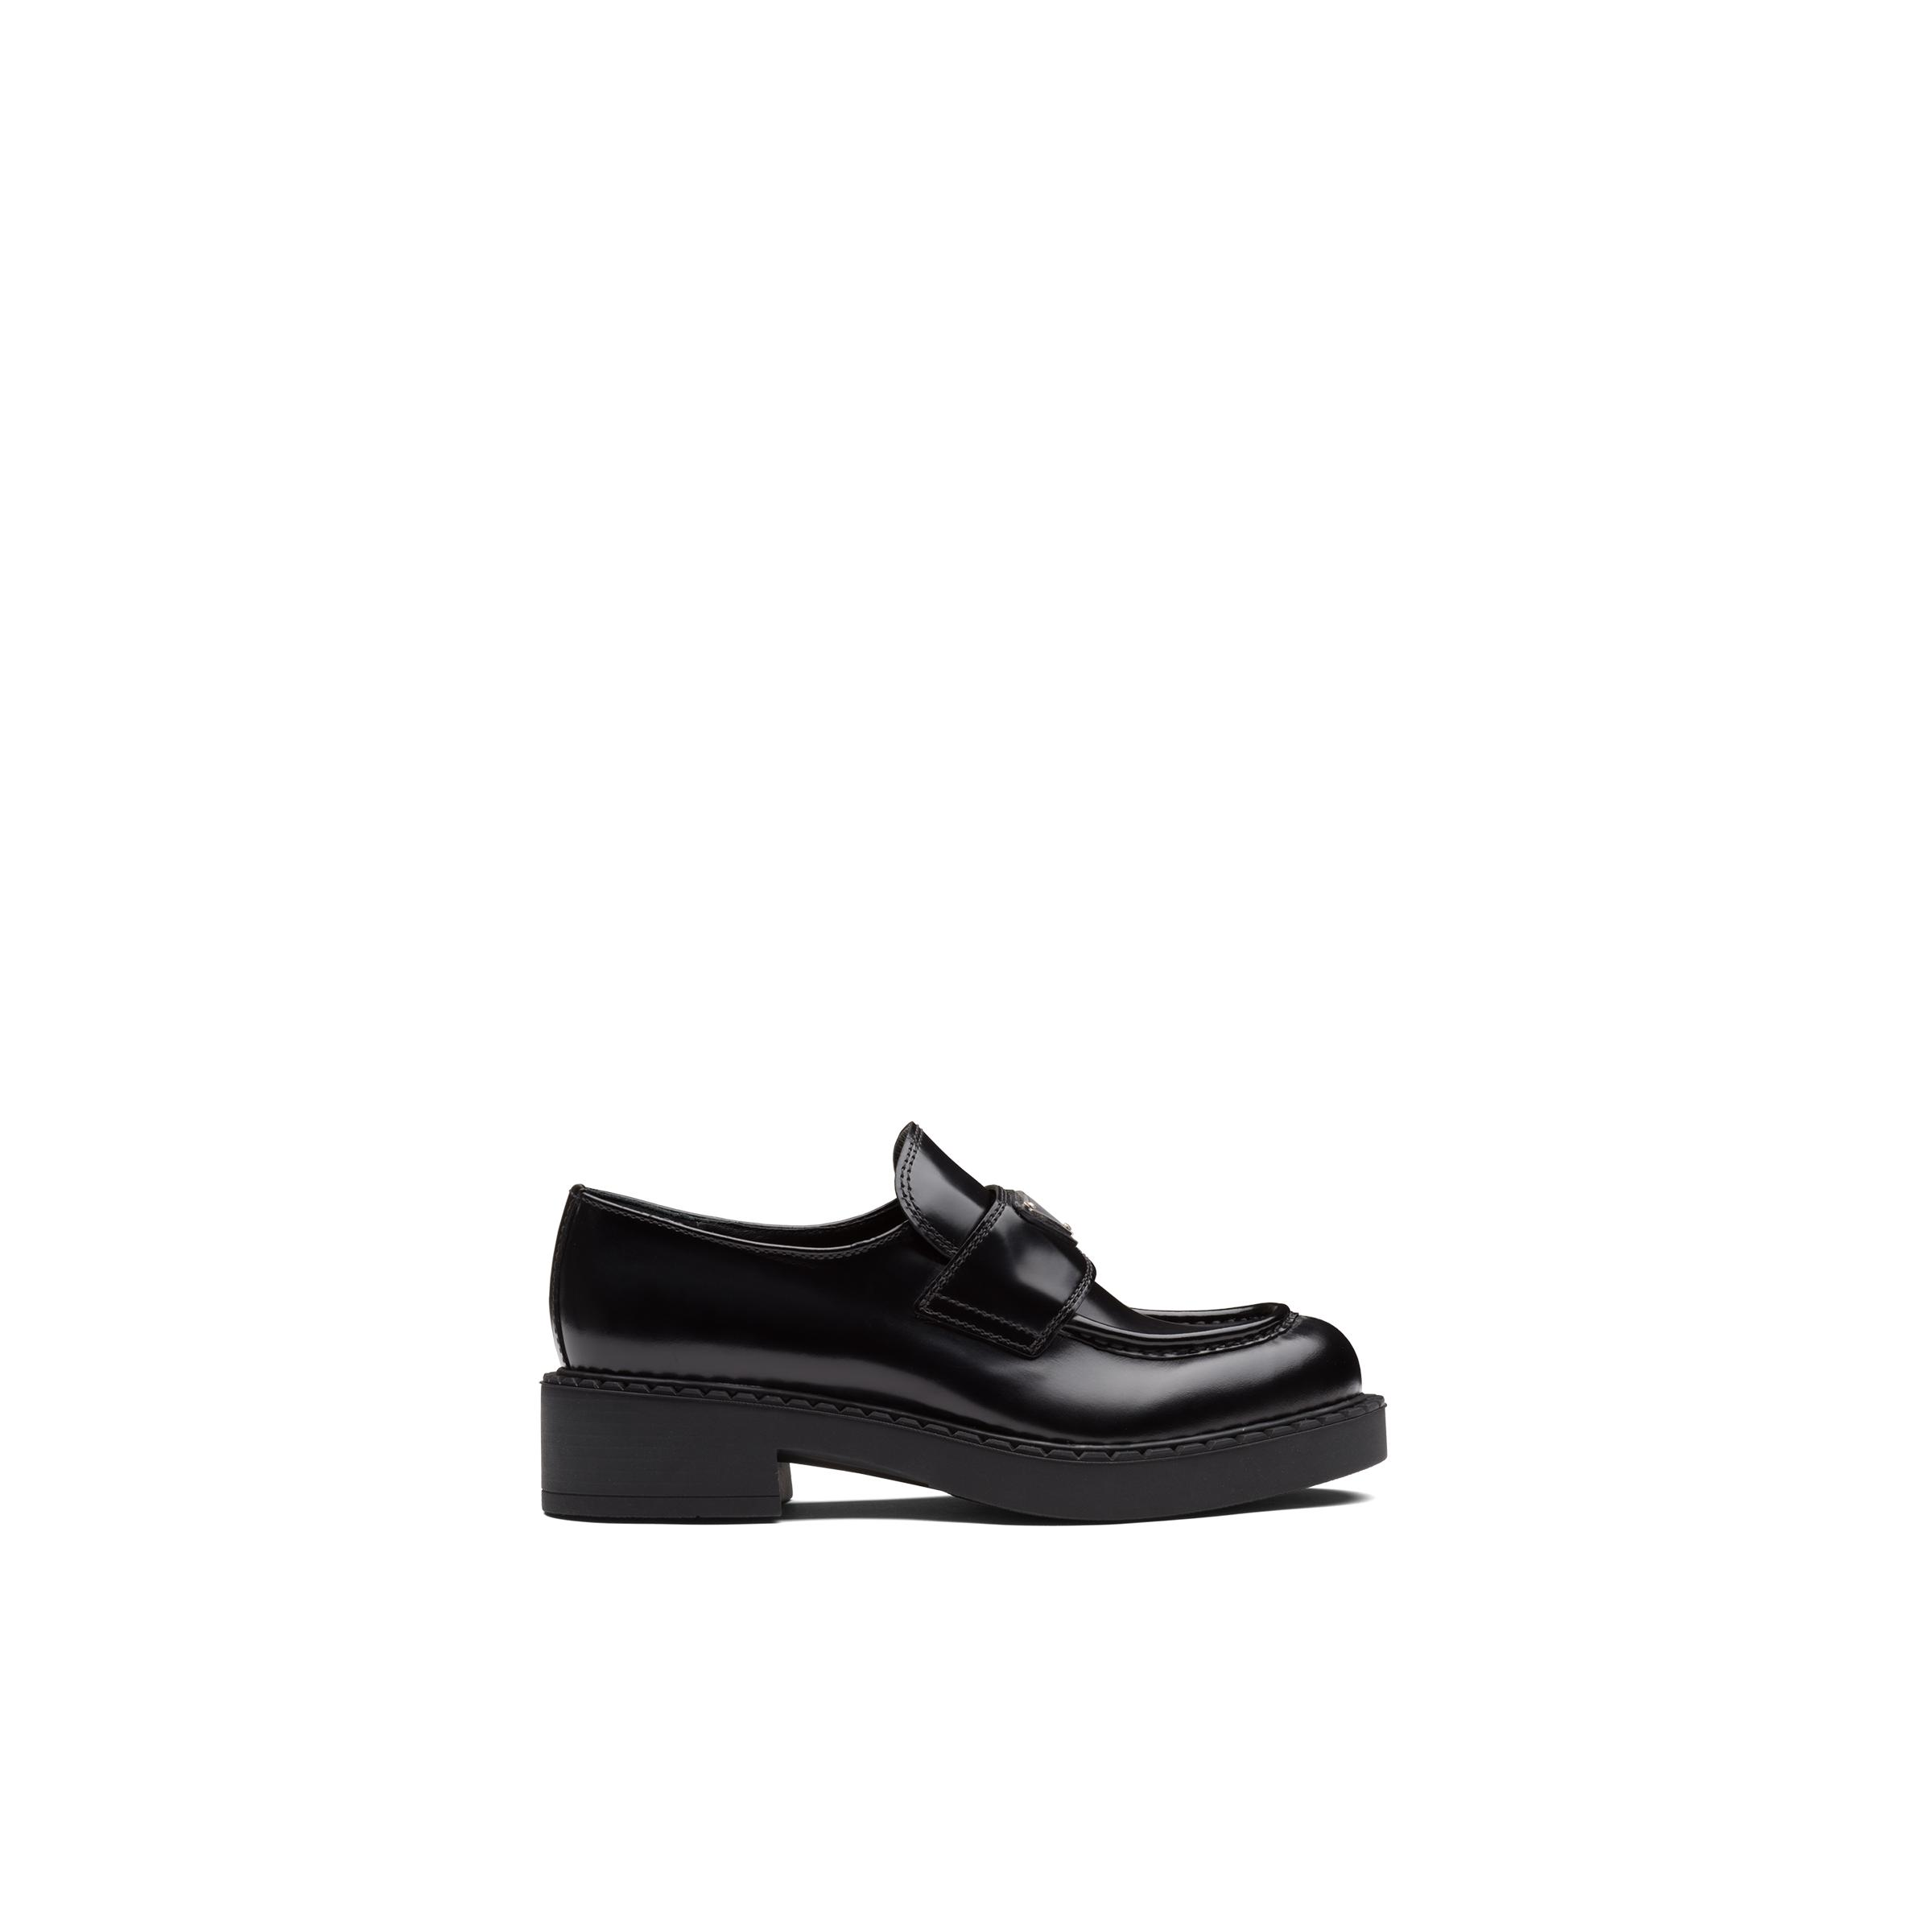 Brushed Leather Loafers Women Black 2